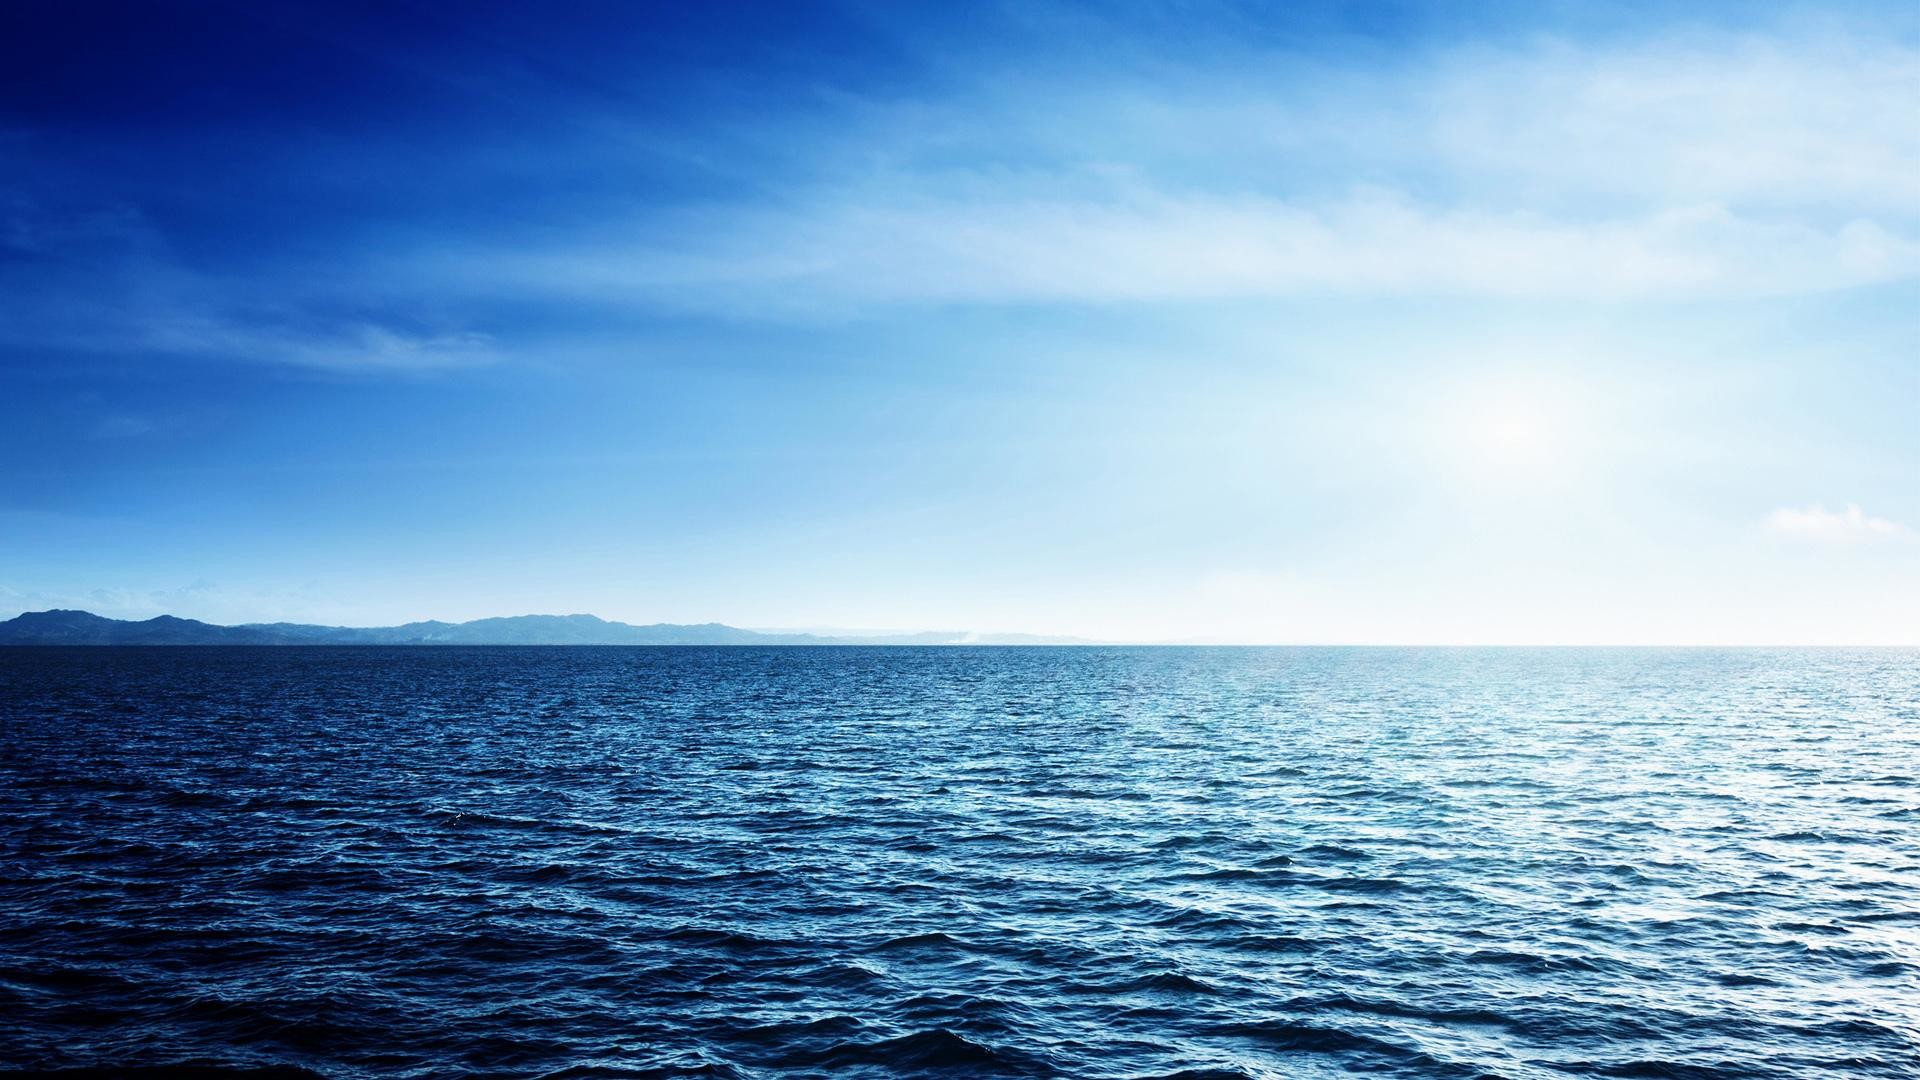 Ocean-wallpapers-backgrounds-pictures-images